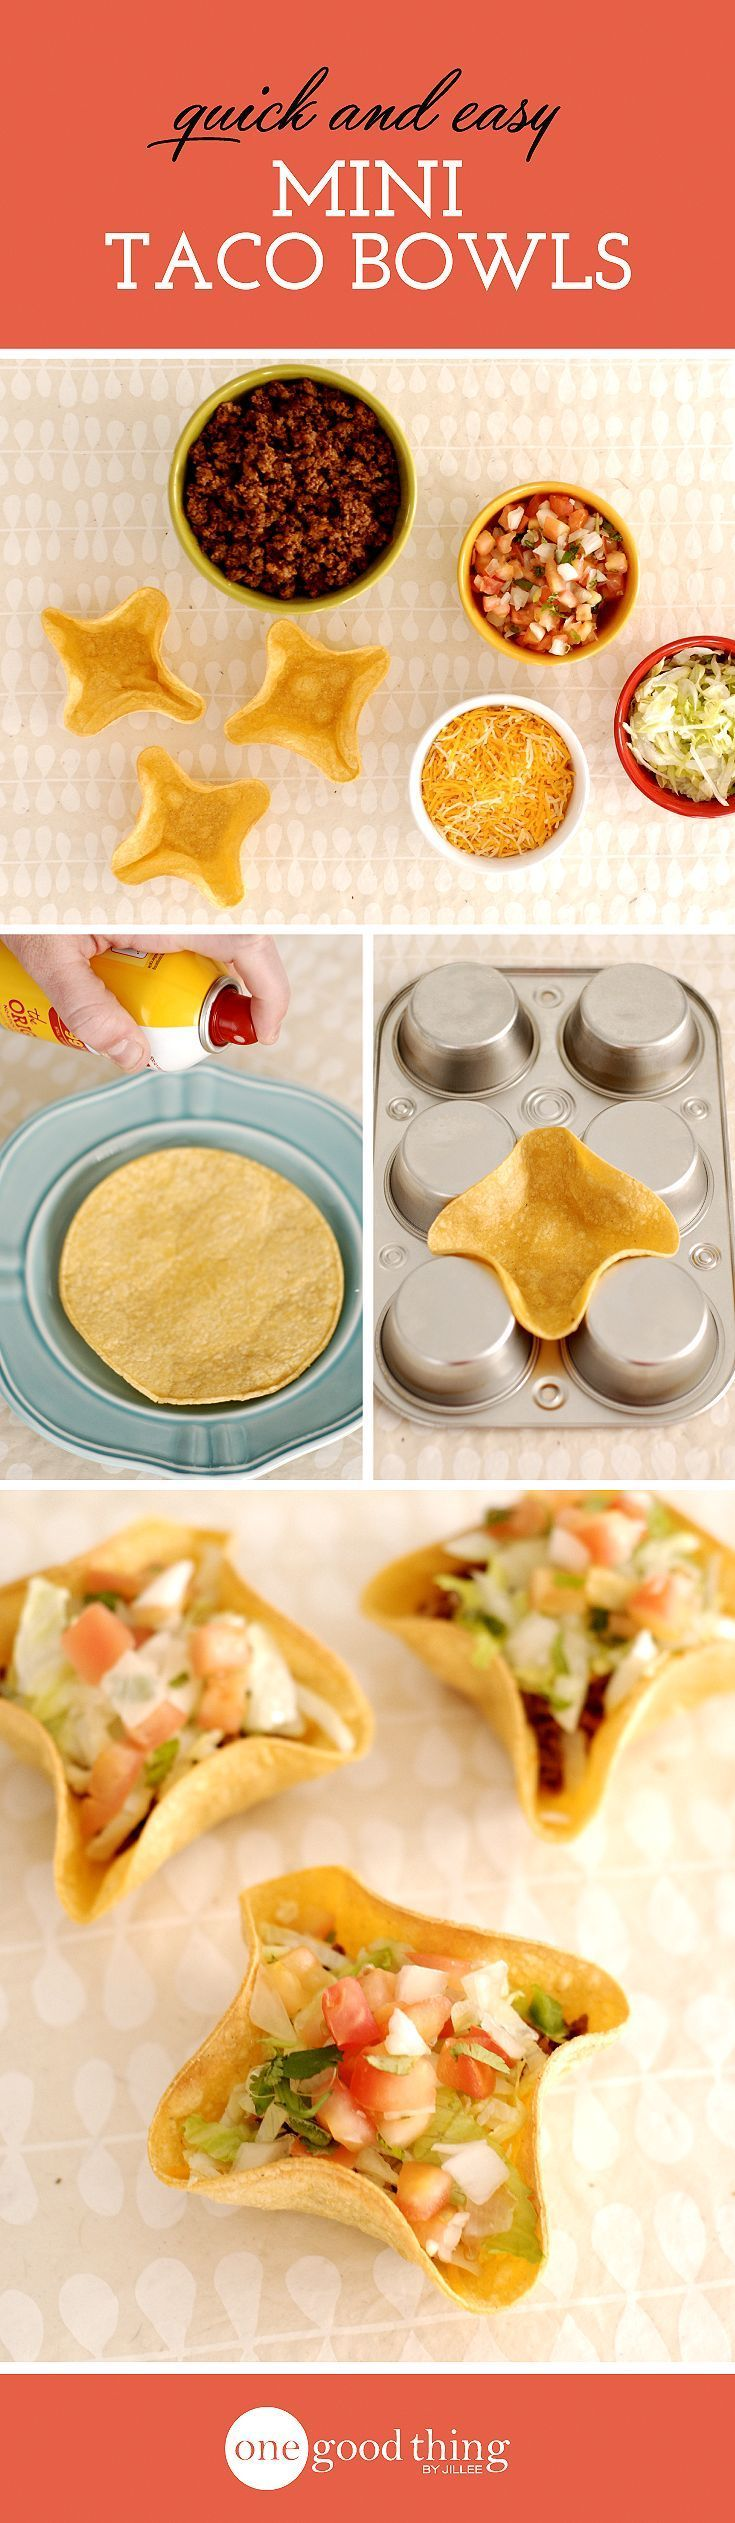 "Take ""Taco Tuesday"" to a whole new level with these cute mini taco bowls you can easily make yourself using the underside of a muffin tin!"